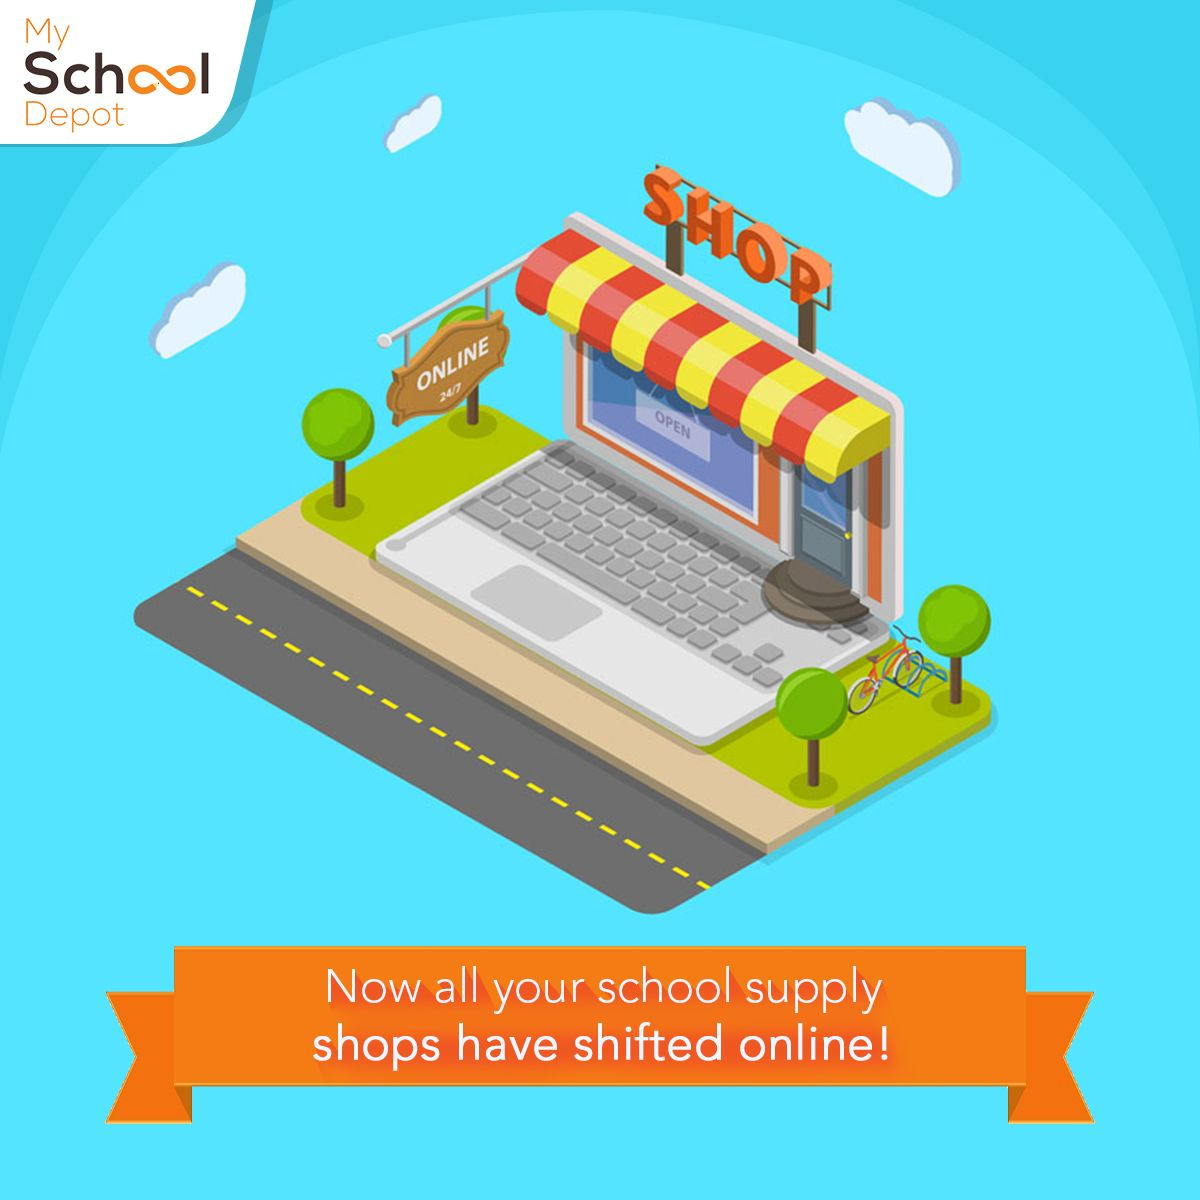 Visit www.myschooldepot.com for a one stop solution to all your ...